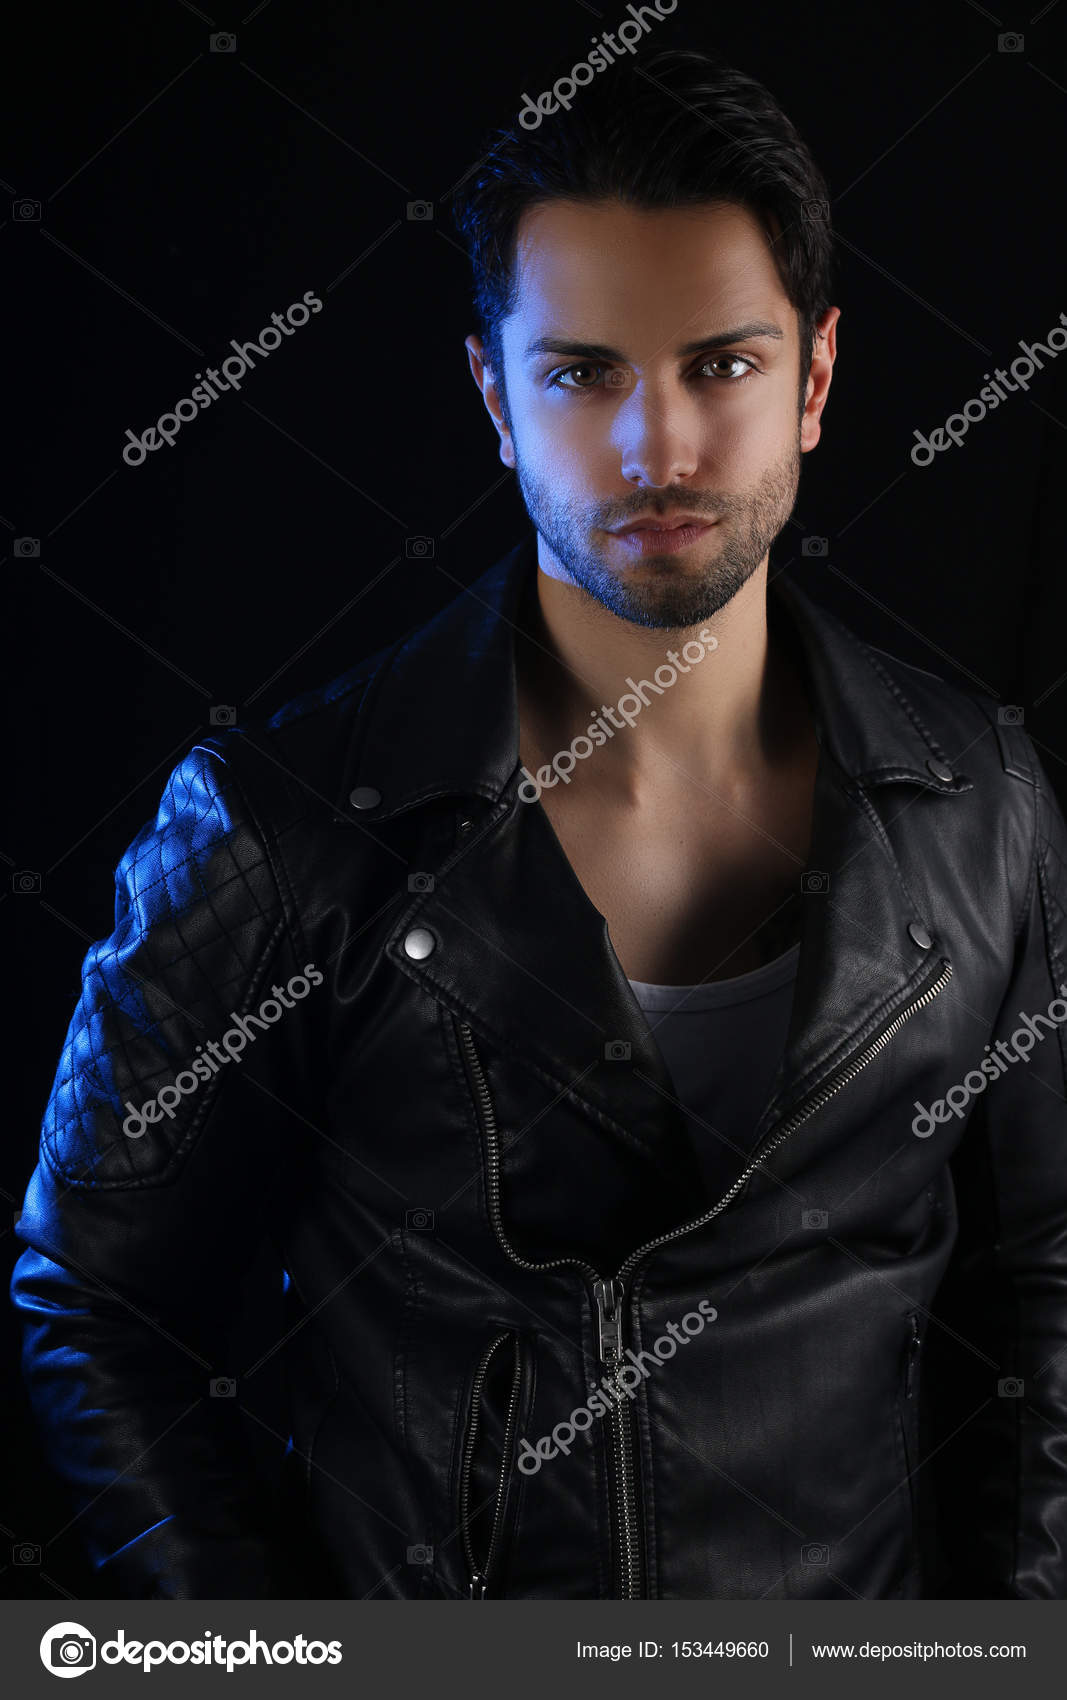 Book Cover Black Jacket ~ Book cover for a vampire novel handsome man wearing a leather